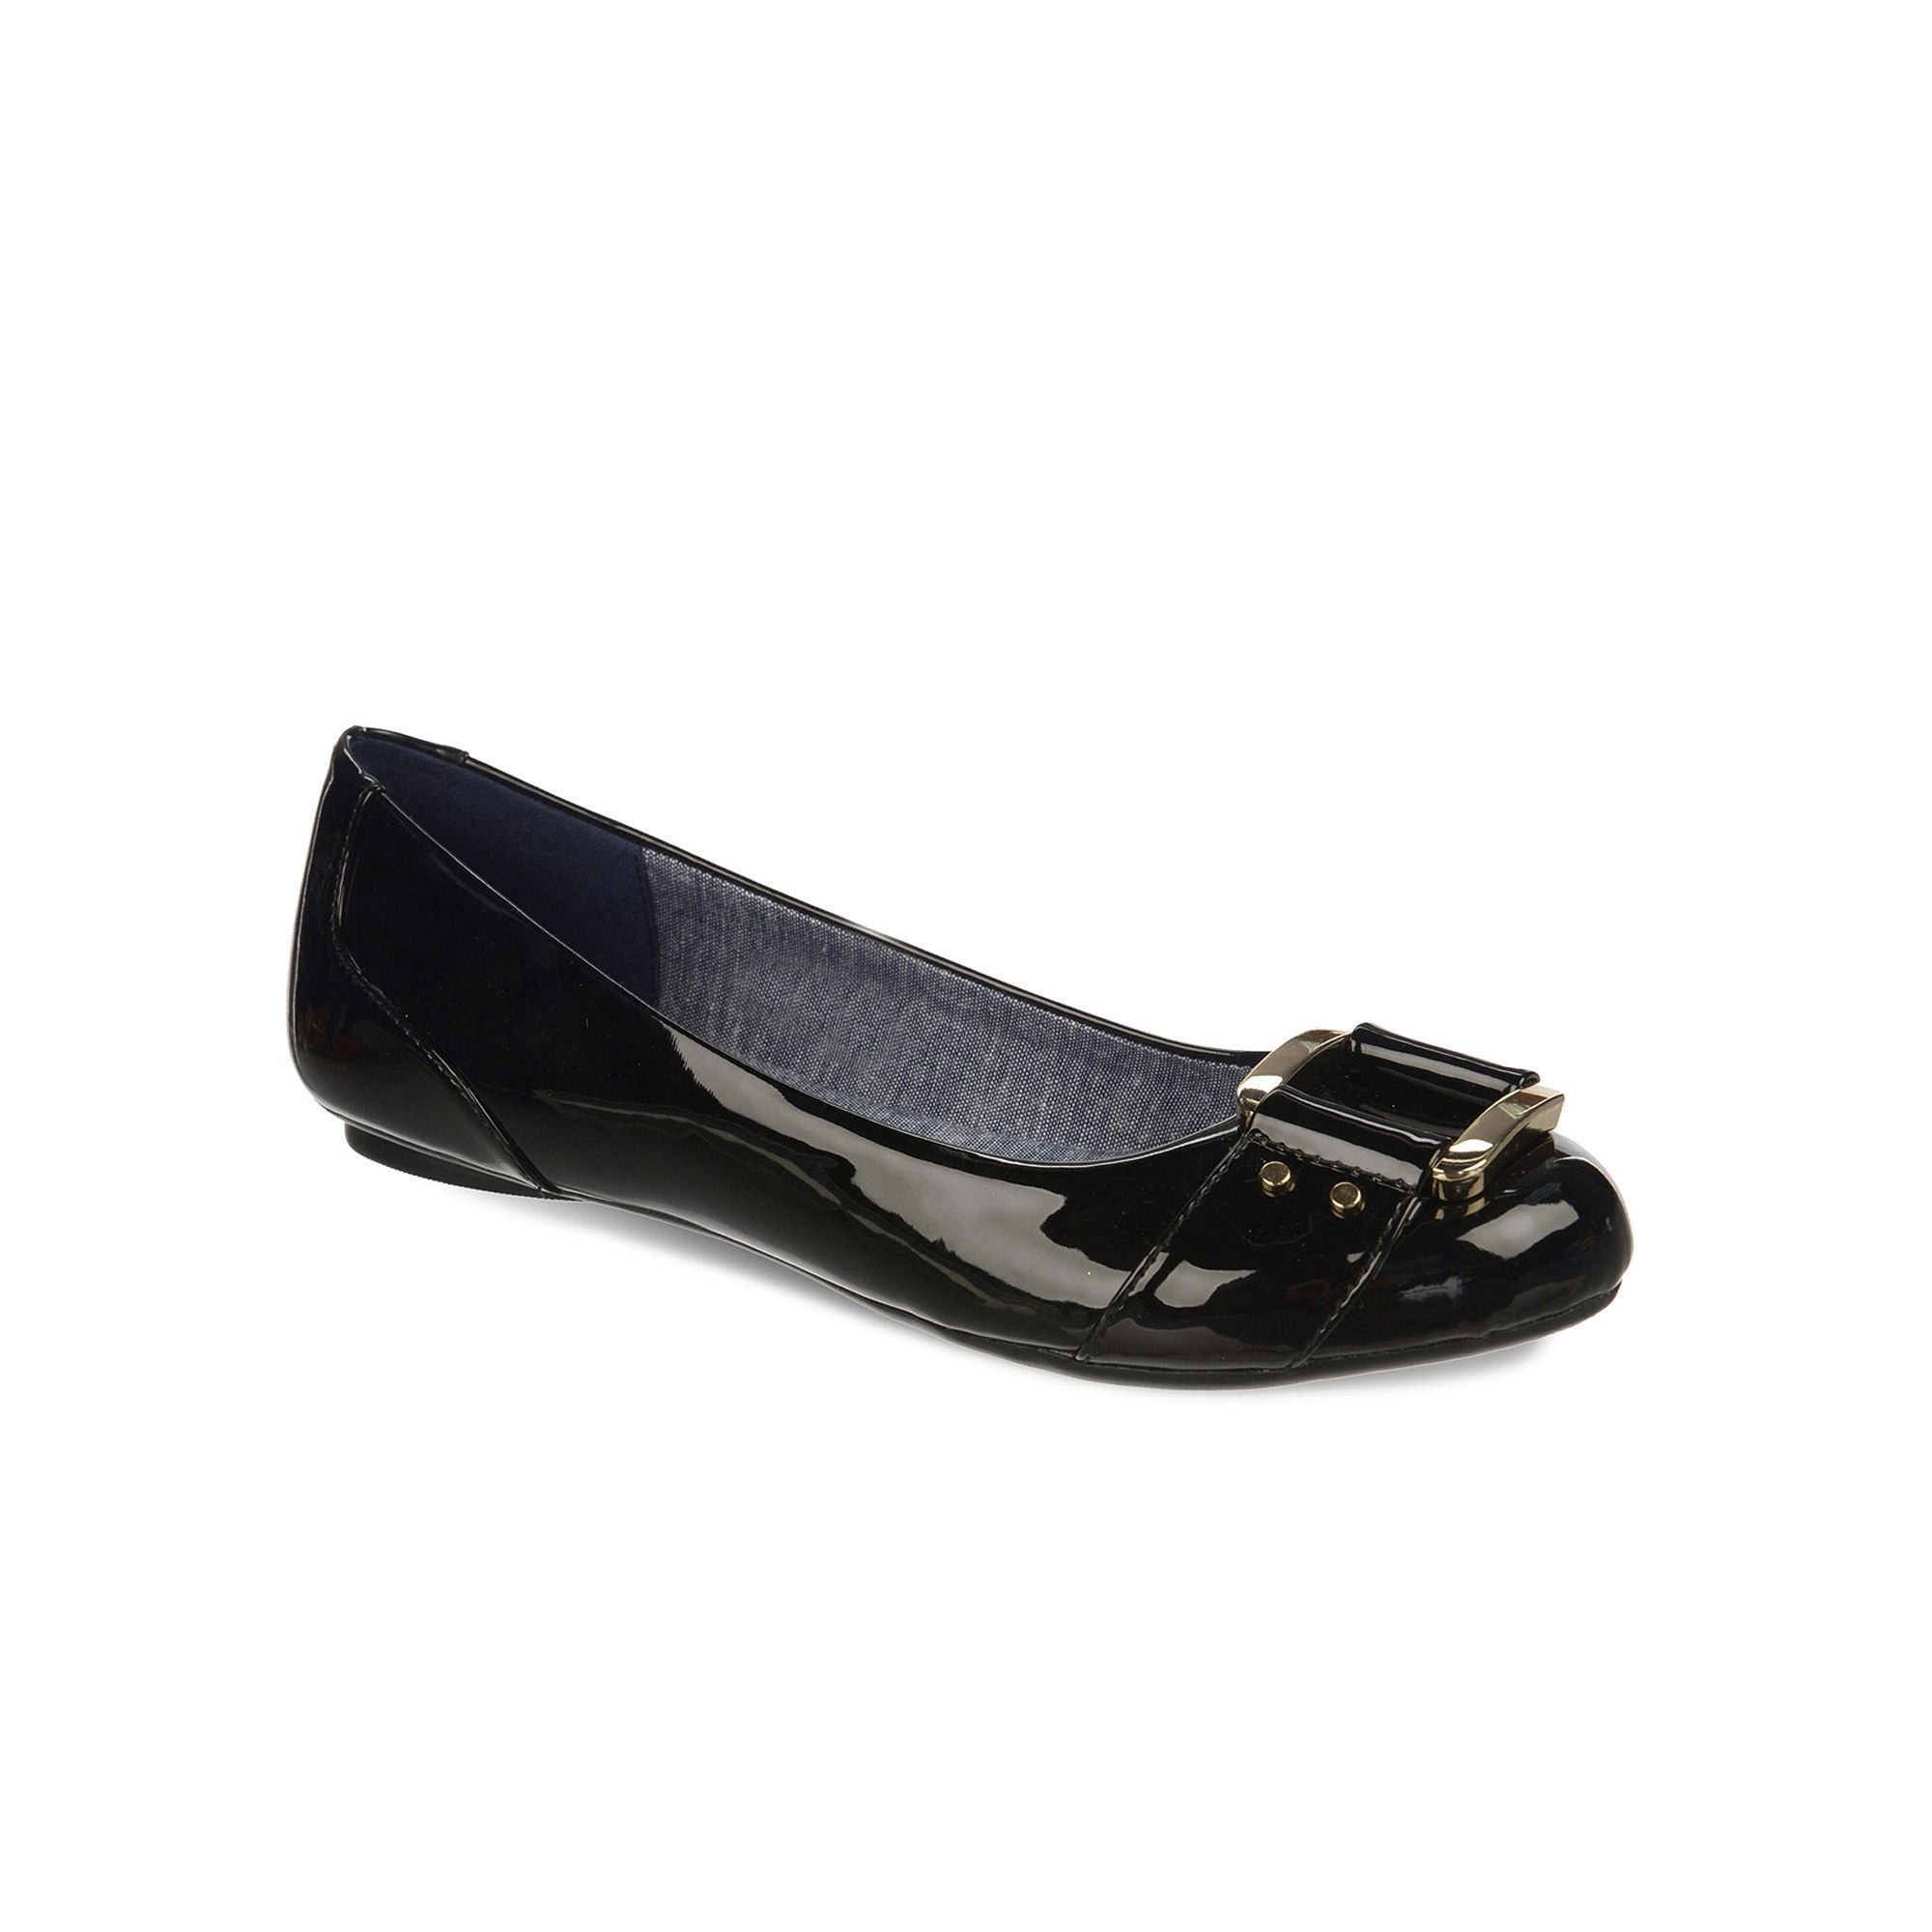 The Most Popular Dr Scholl's Frankie For Women Online